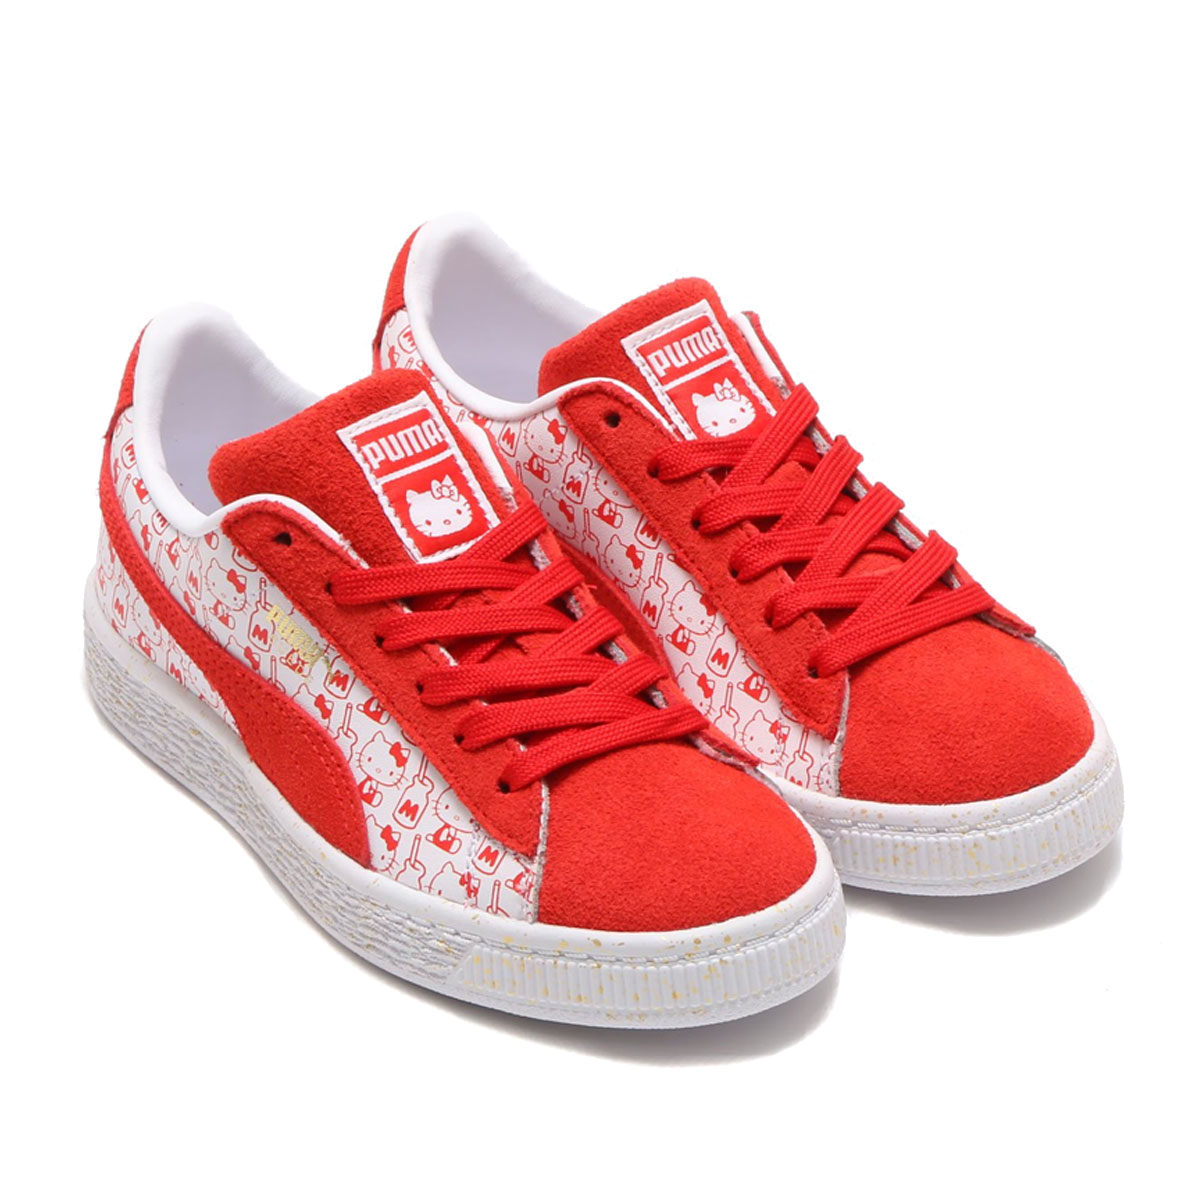 best sneakers 9b164 85362 PUMA SUEDE CLASSIC X HELLO KITTY PS (Puma suede classical music X Hello  Kitty PS) BRIGHT RED-BR 18SS-S